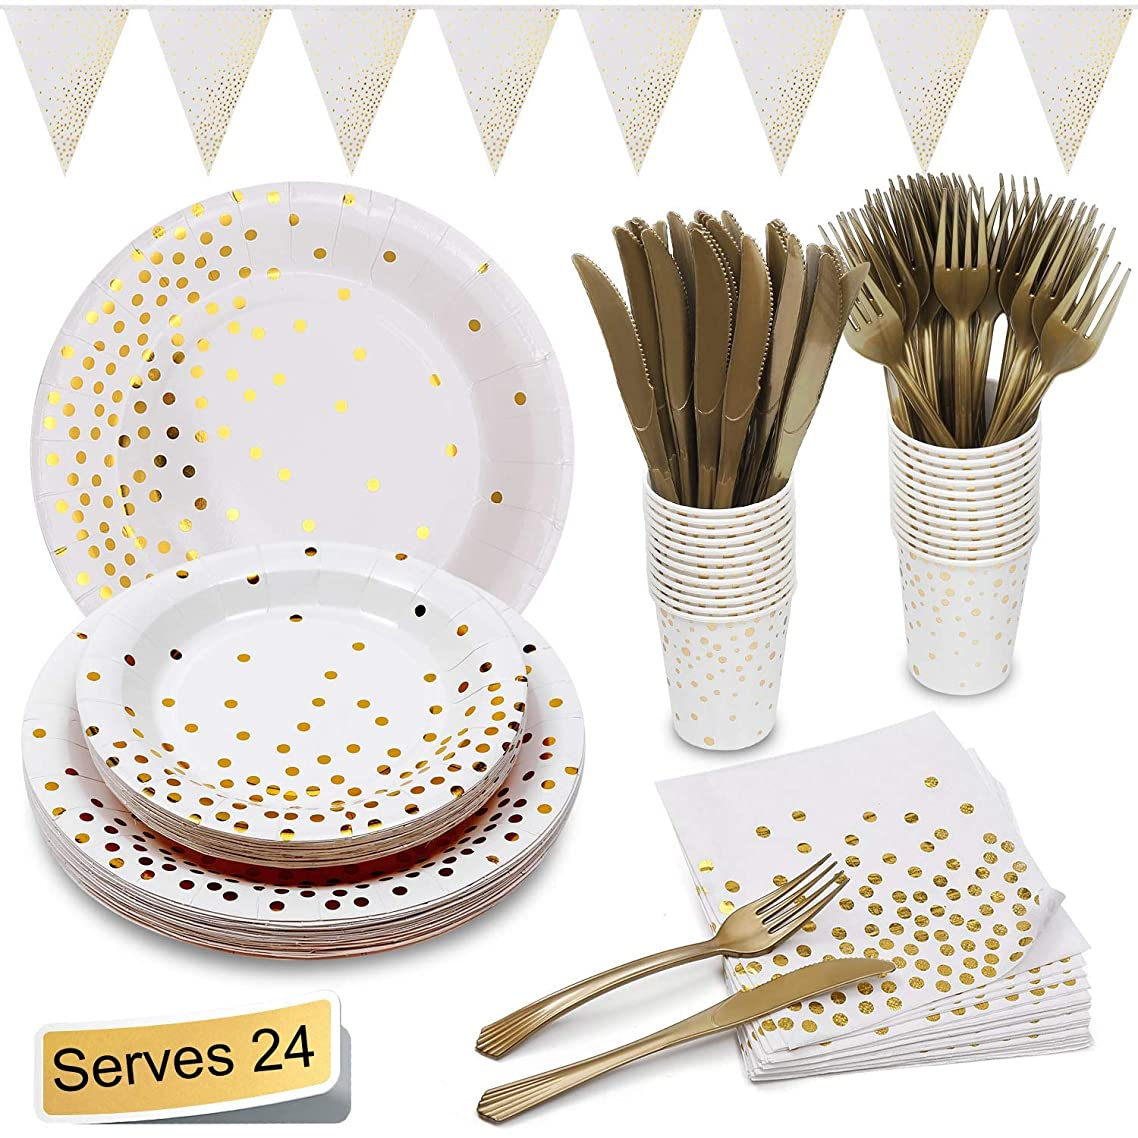 """White and Gold Party Supplies Golden Dot Decoration Party Set Includes 7""""&9"""" Paper Plates Napkins Knives Forks Cups Banner for Bridal Shower, Engagement, Wedding, Housewarming, Serves 24"""